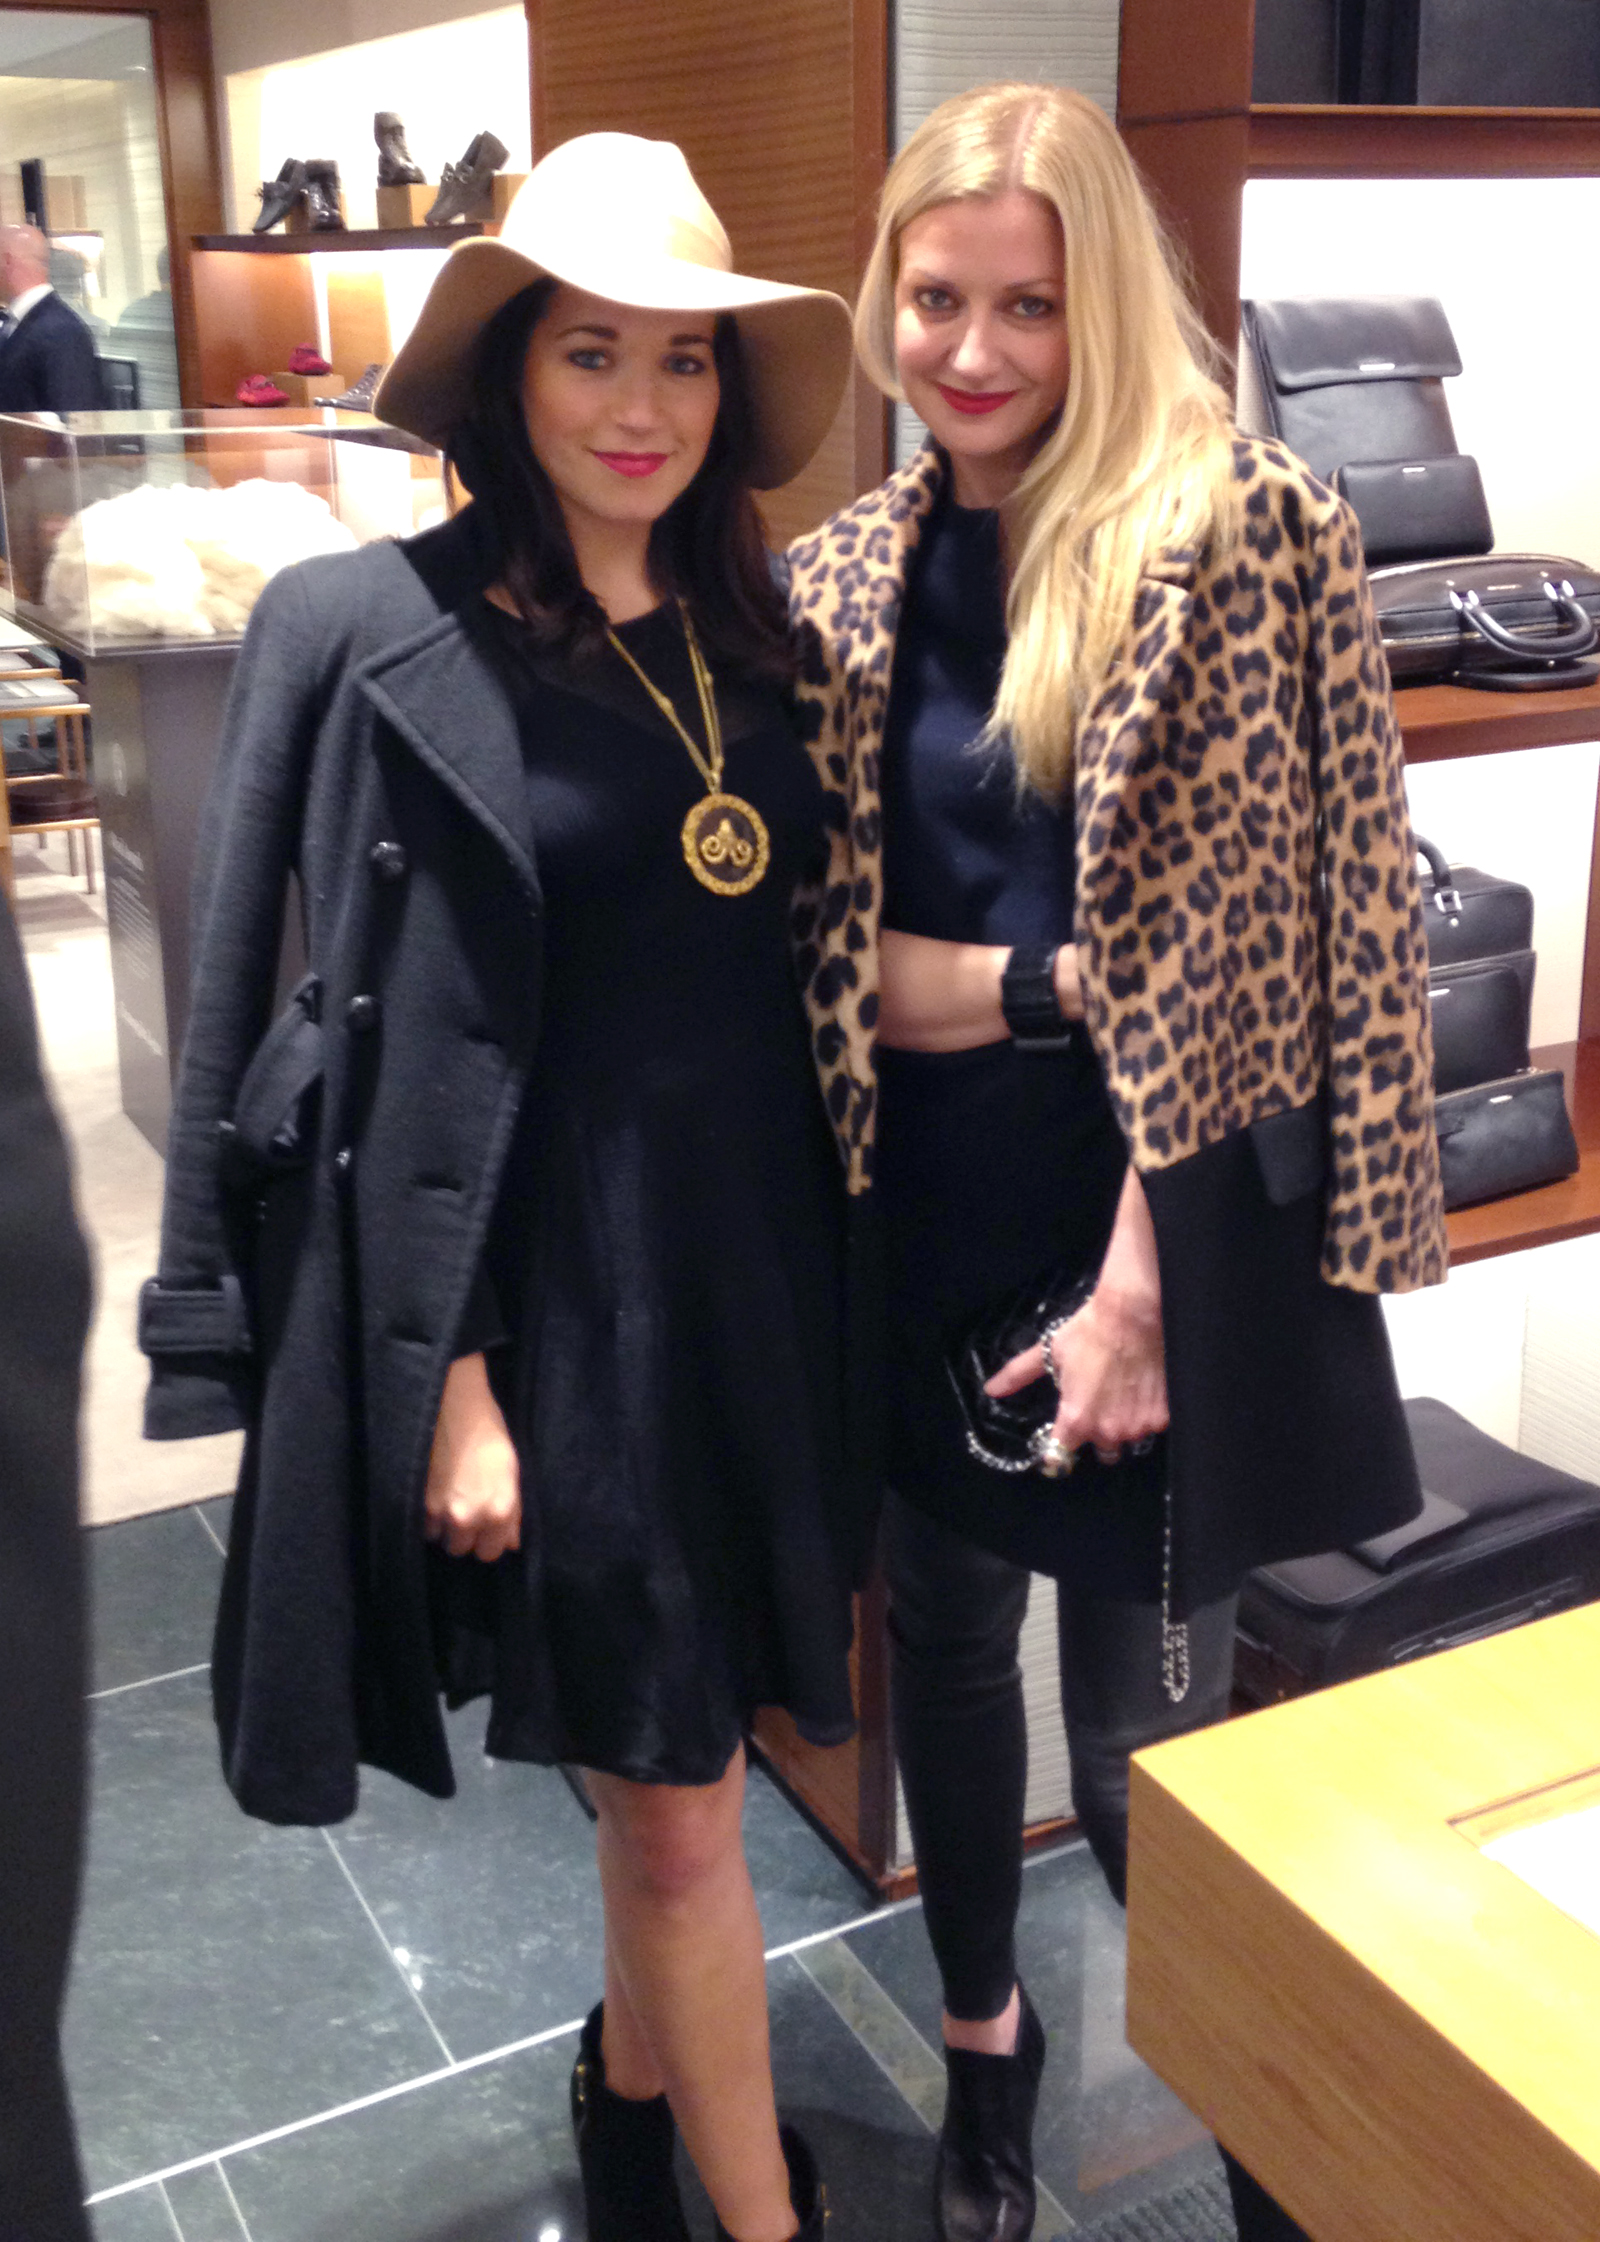 Jessica Sheehan and Lisa Marie at Zegna reopening in Chicago